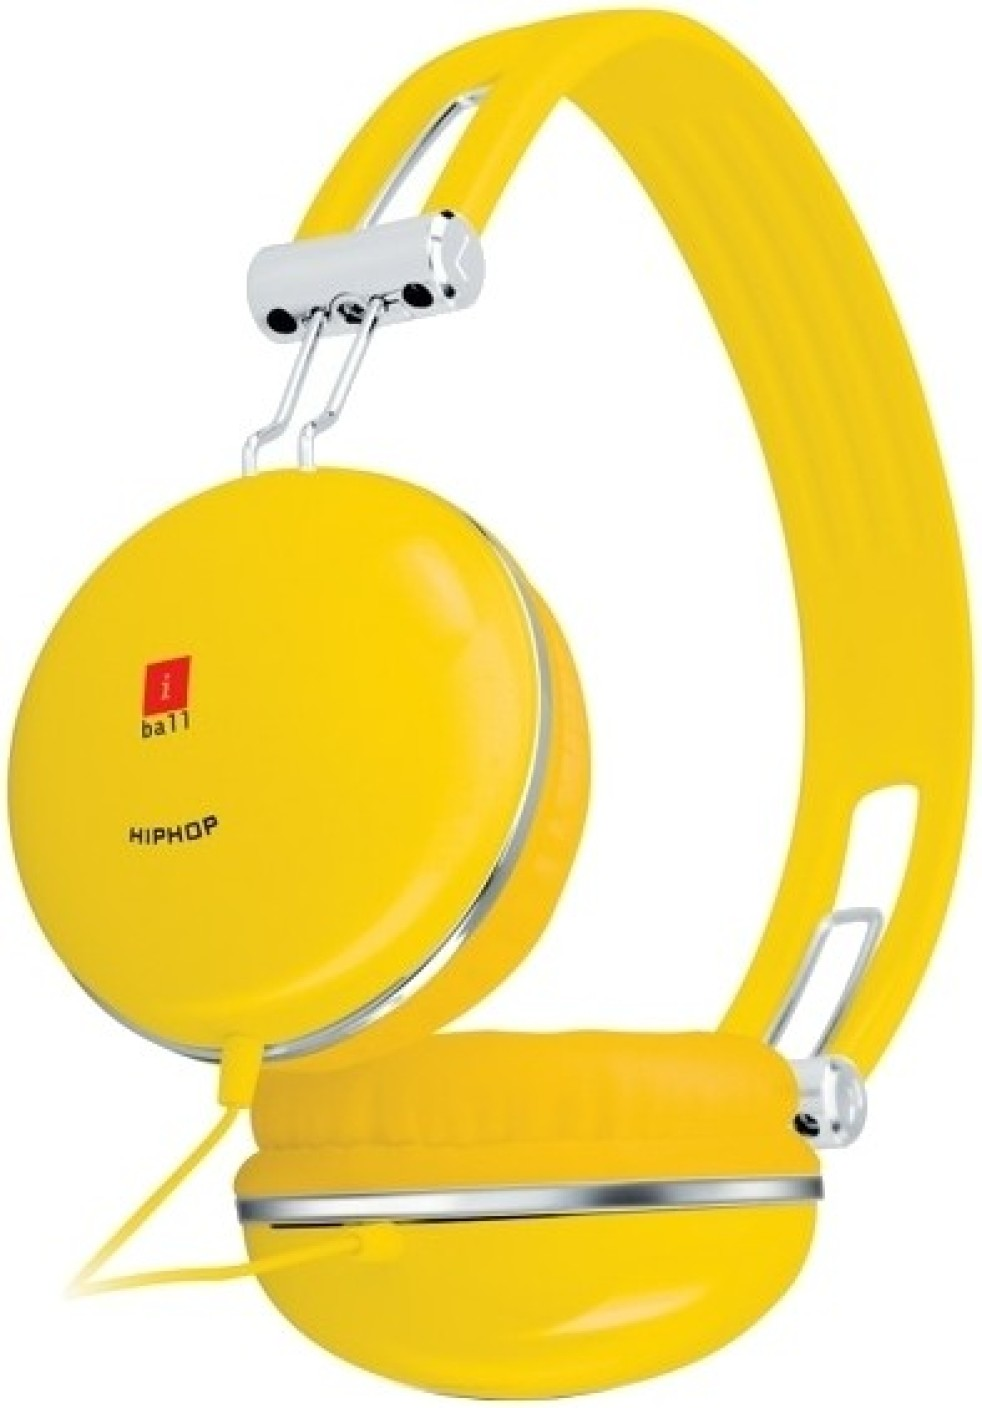 Iball hiphop yellow headphone price in india buy iball for Decor 9 iball